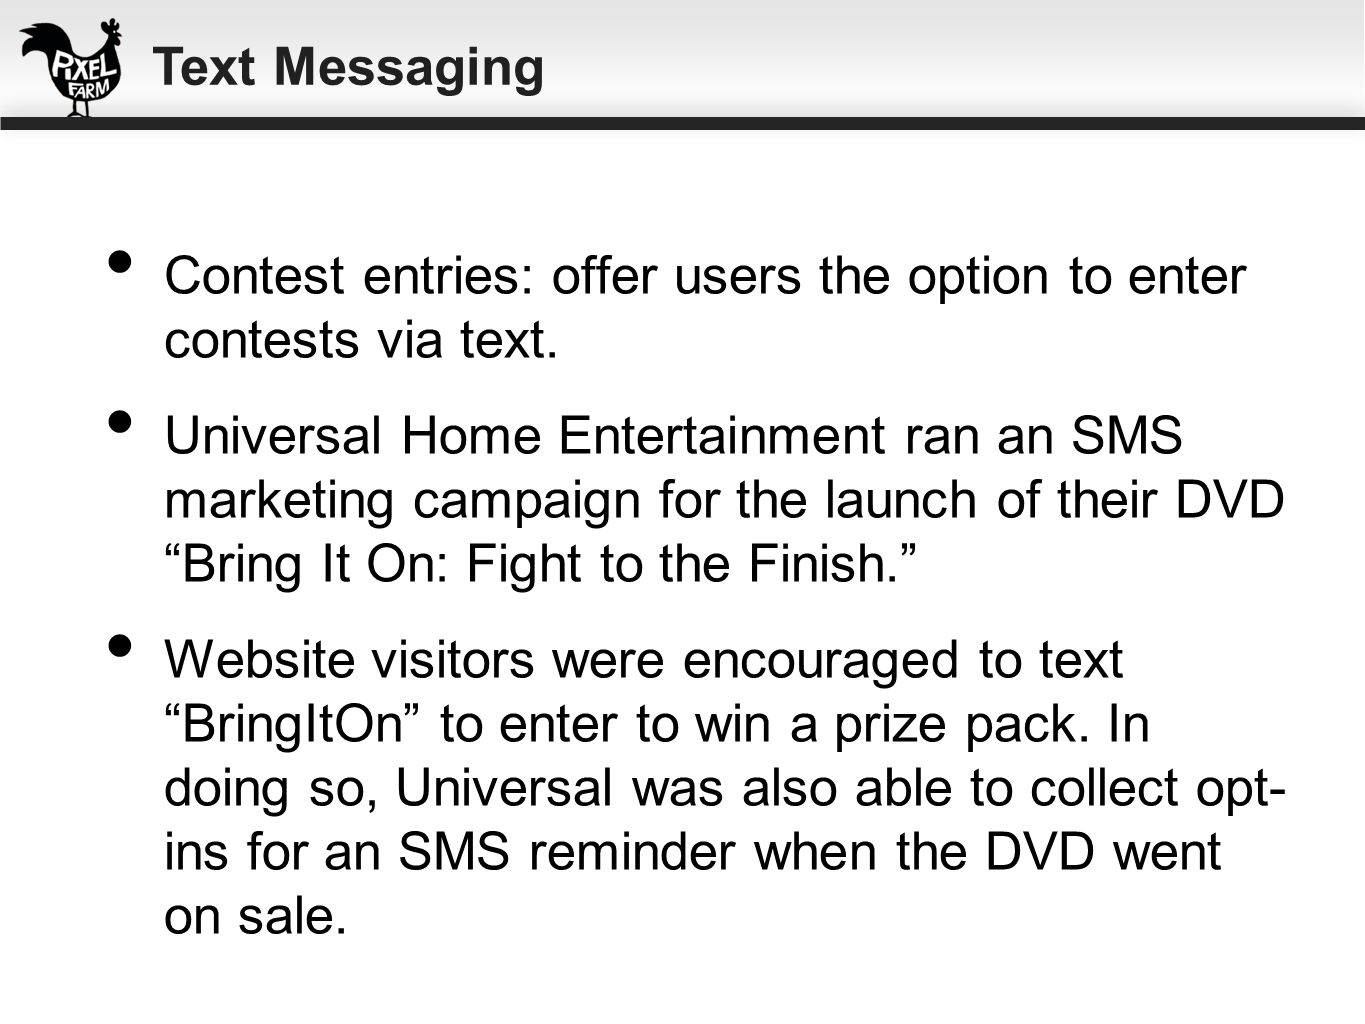 Text MessagingContest entries: offer users the option to enter contests via text.